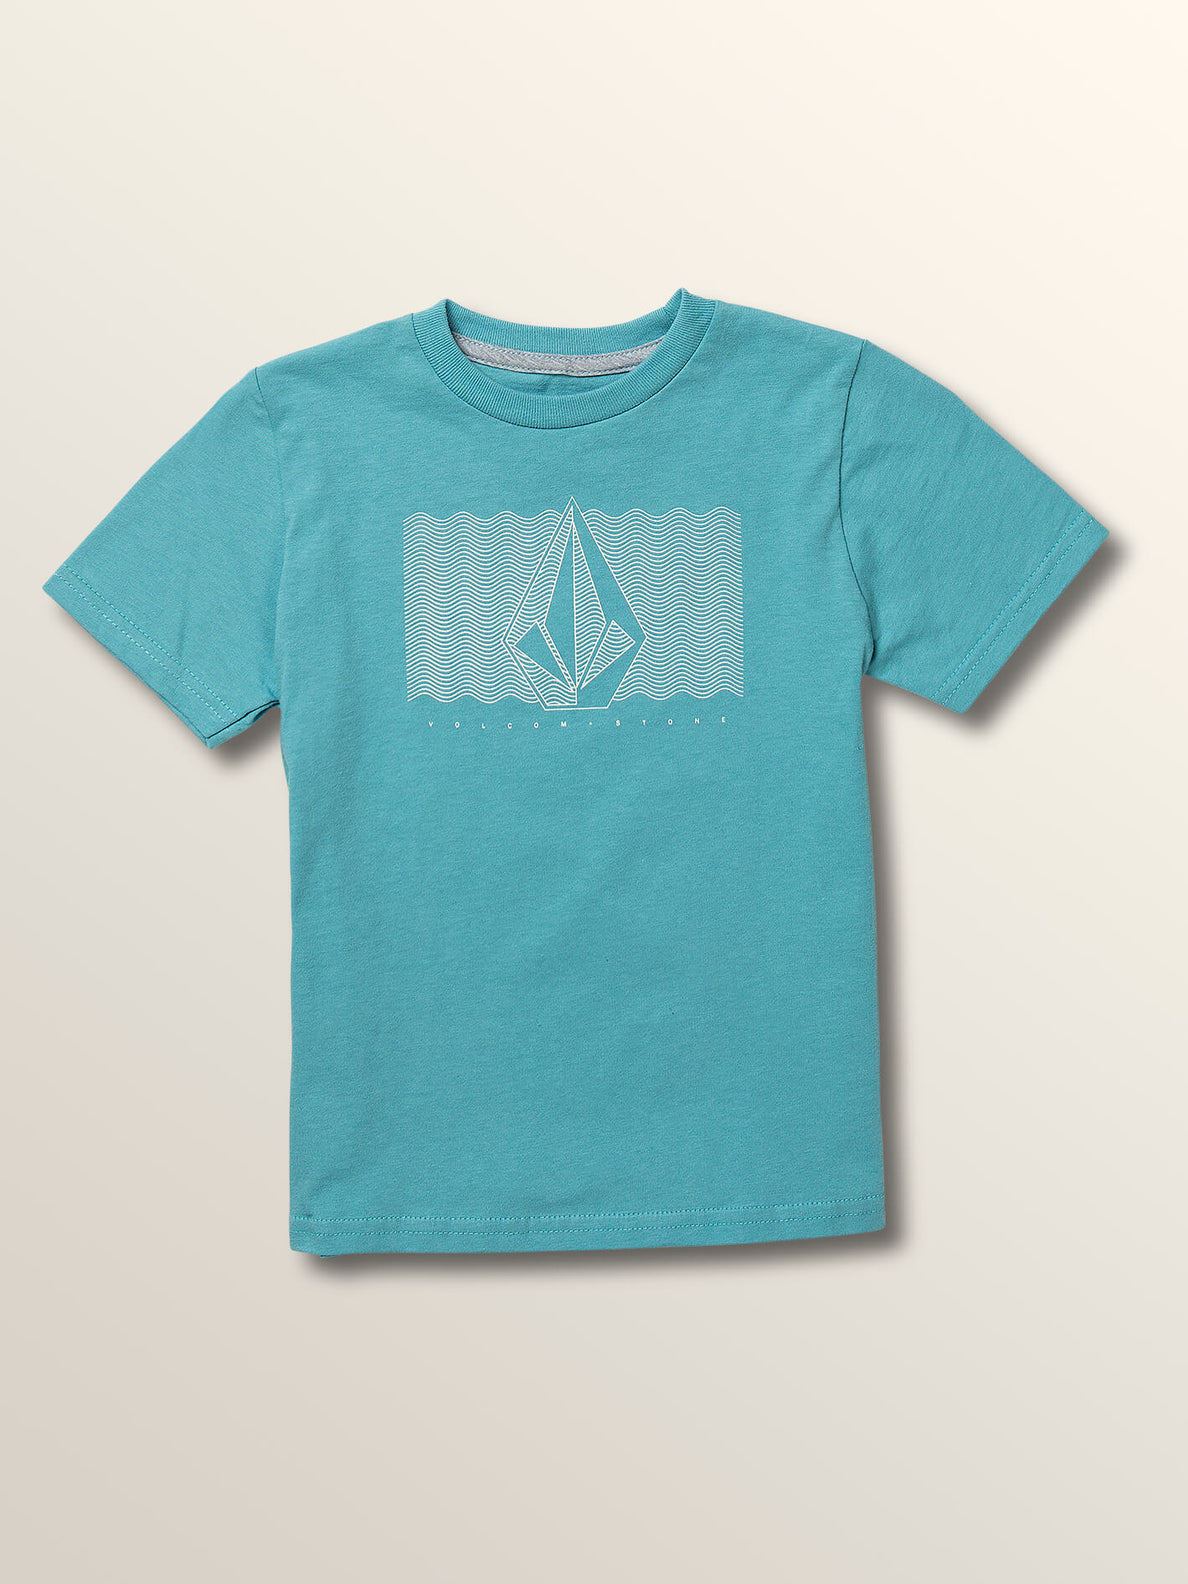 Little Boys Sound Waves Short Sleeve Tee In Blue Bird, Front View